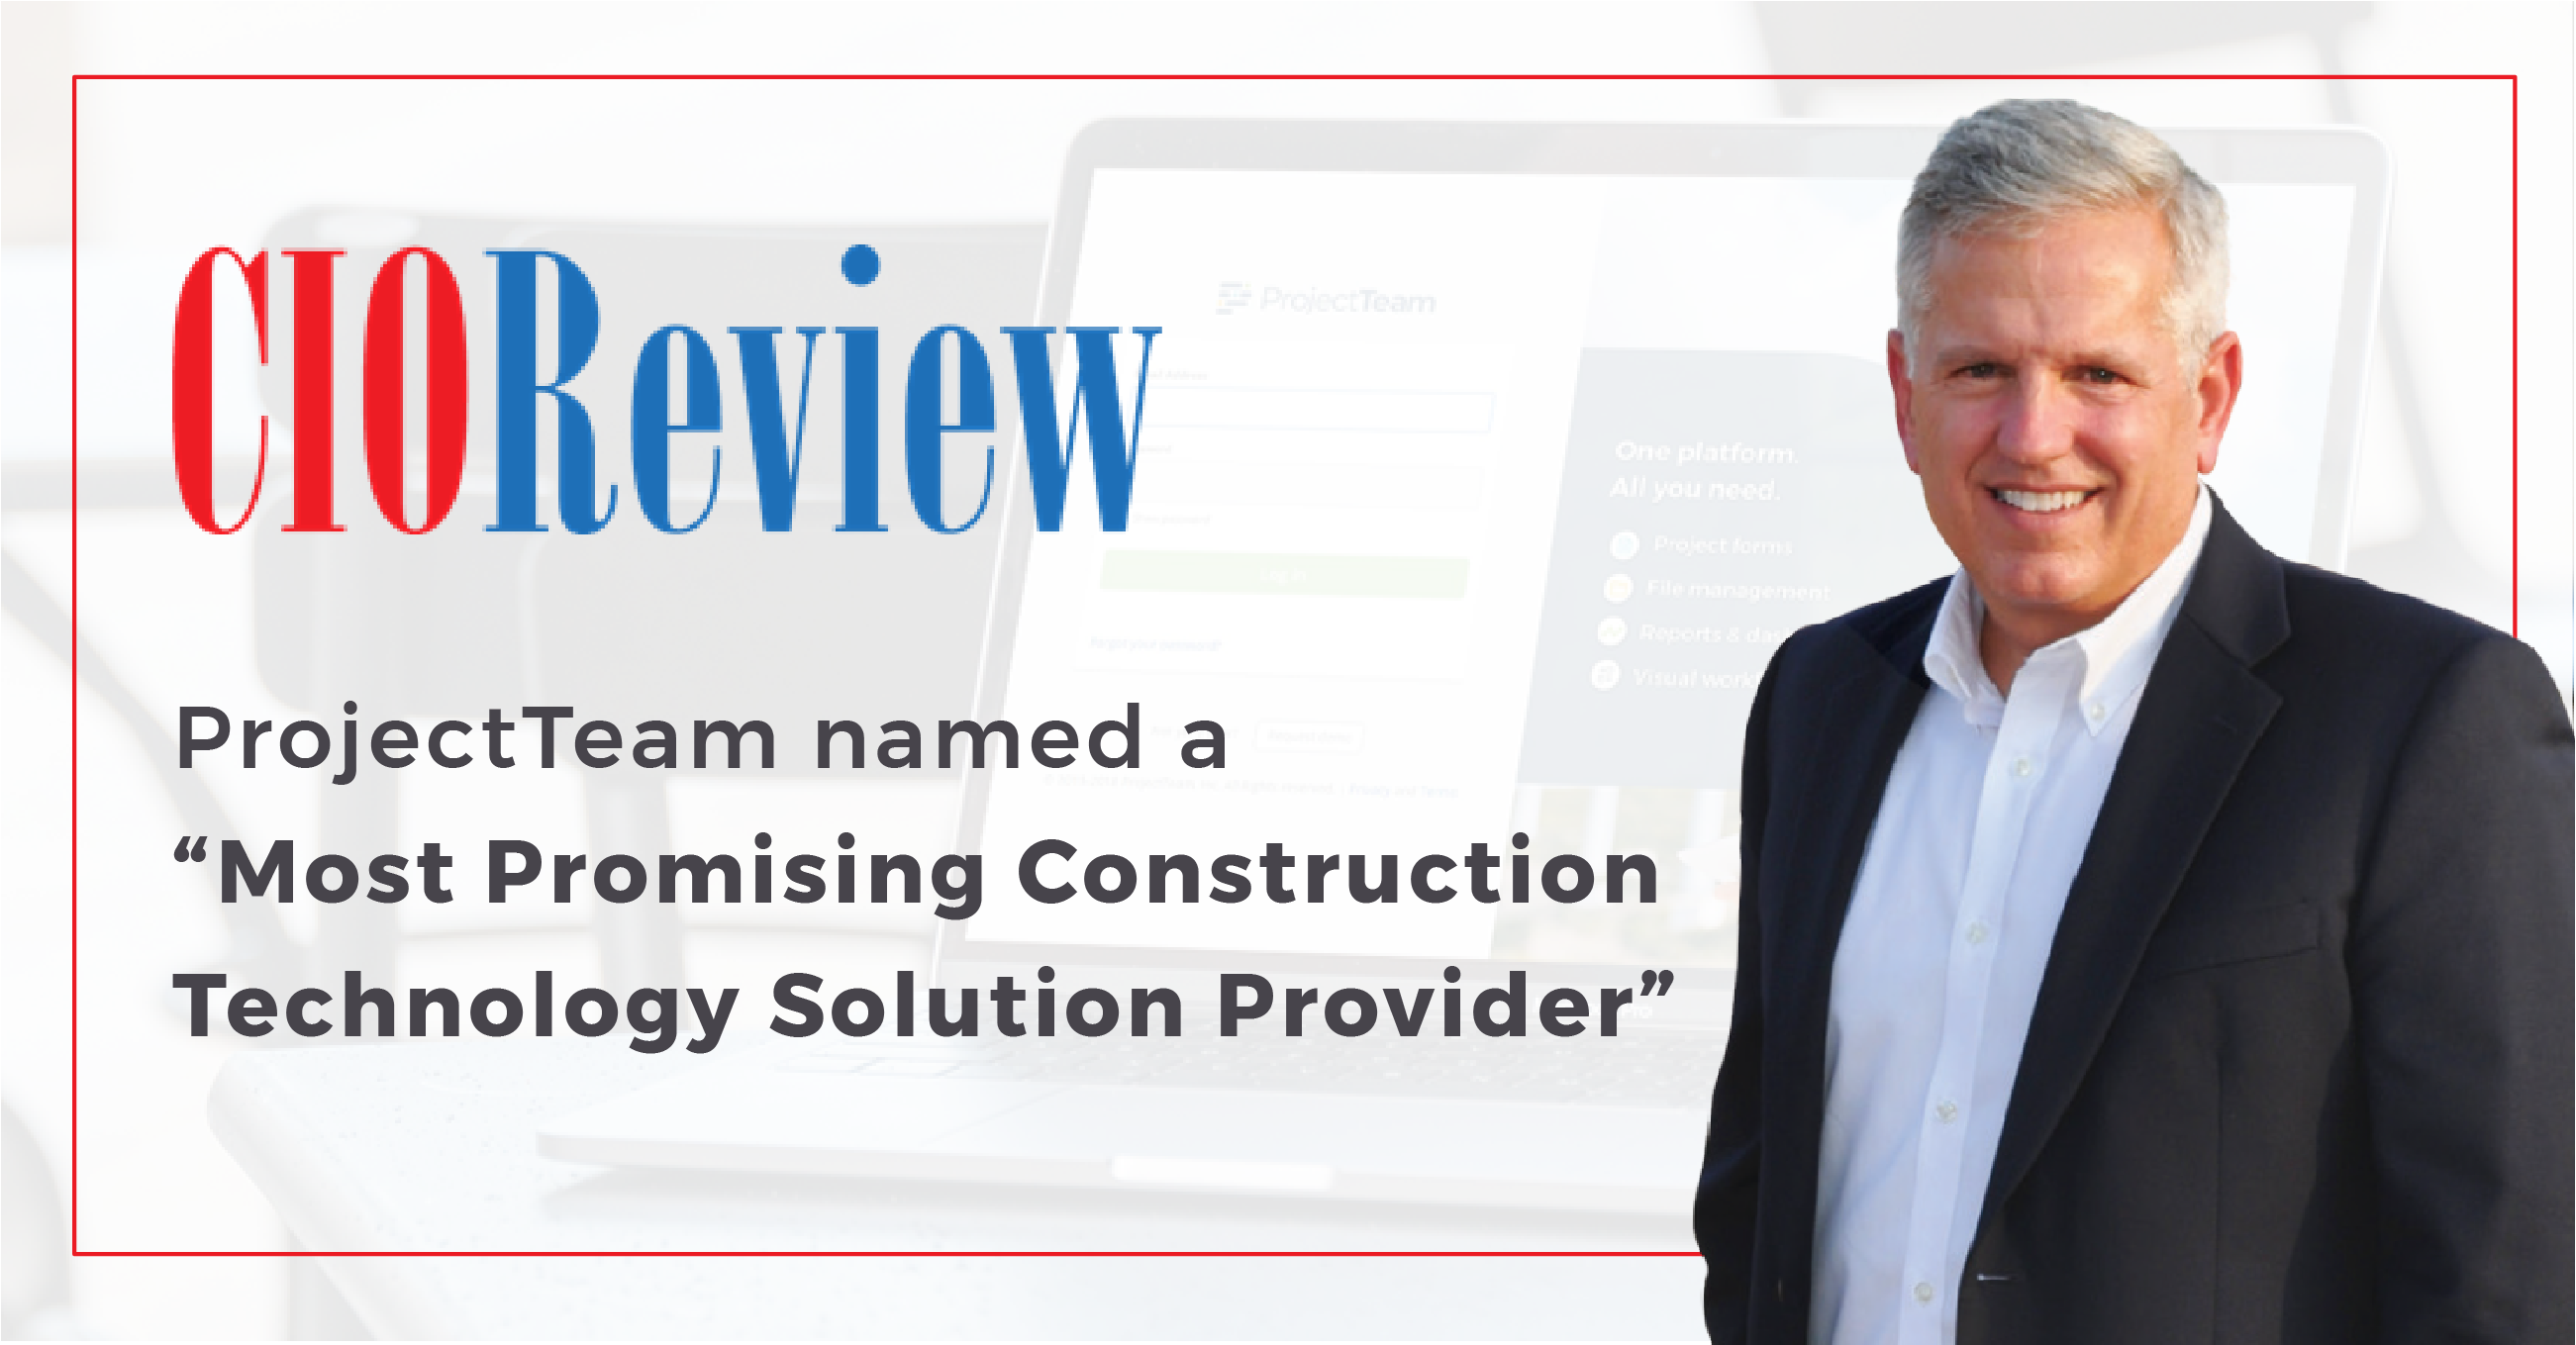 ProjectTeam Recognized as a Most Promising Construction Technology